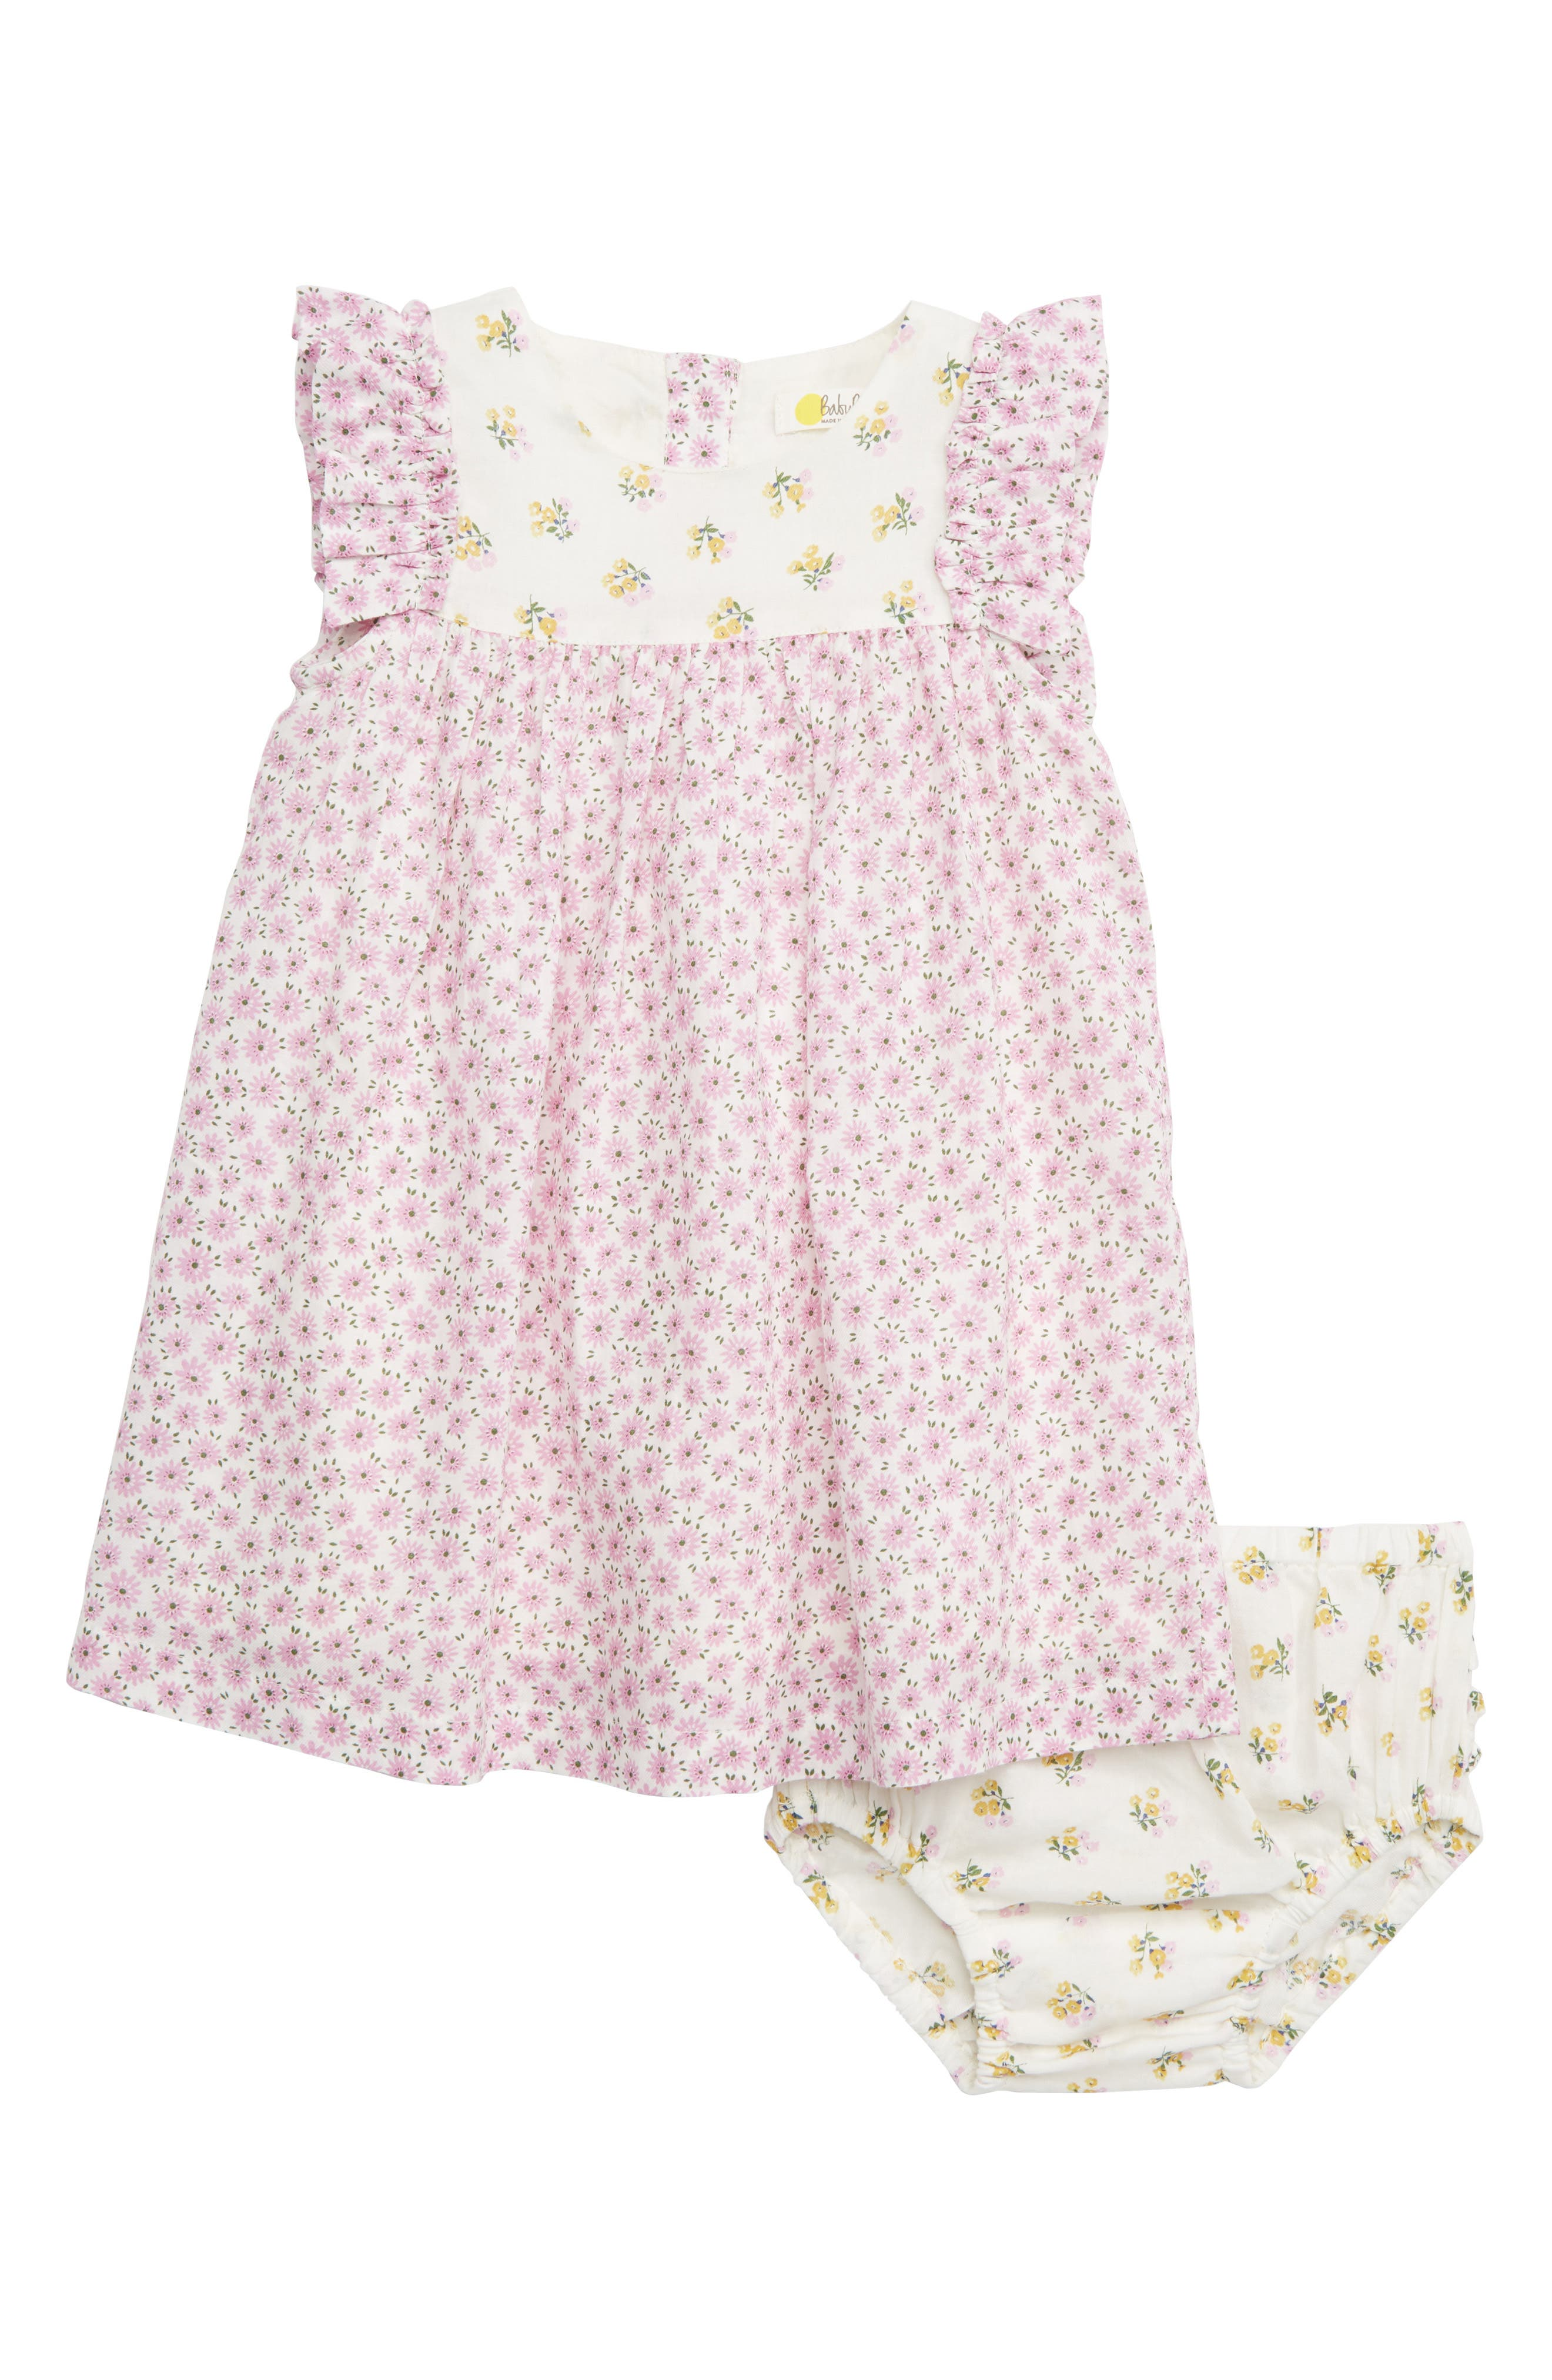 MINI BODEN, Mixed Floral Print Woven Dress, Main thumbnail 1, color, PRP LILAC PINK BLOSSOM